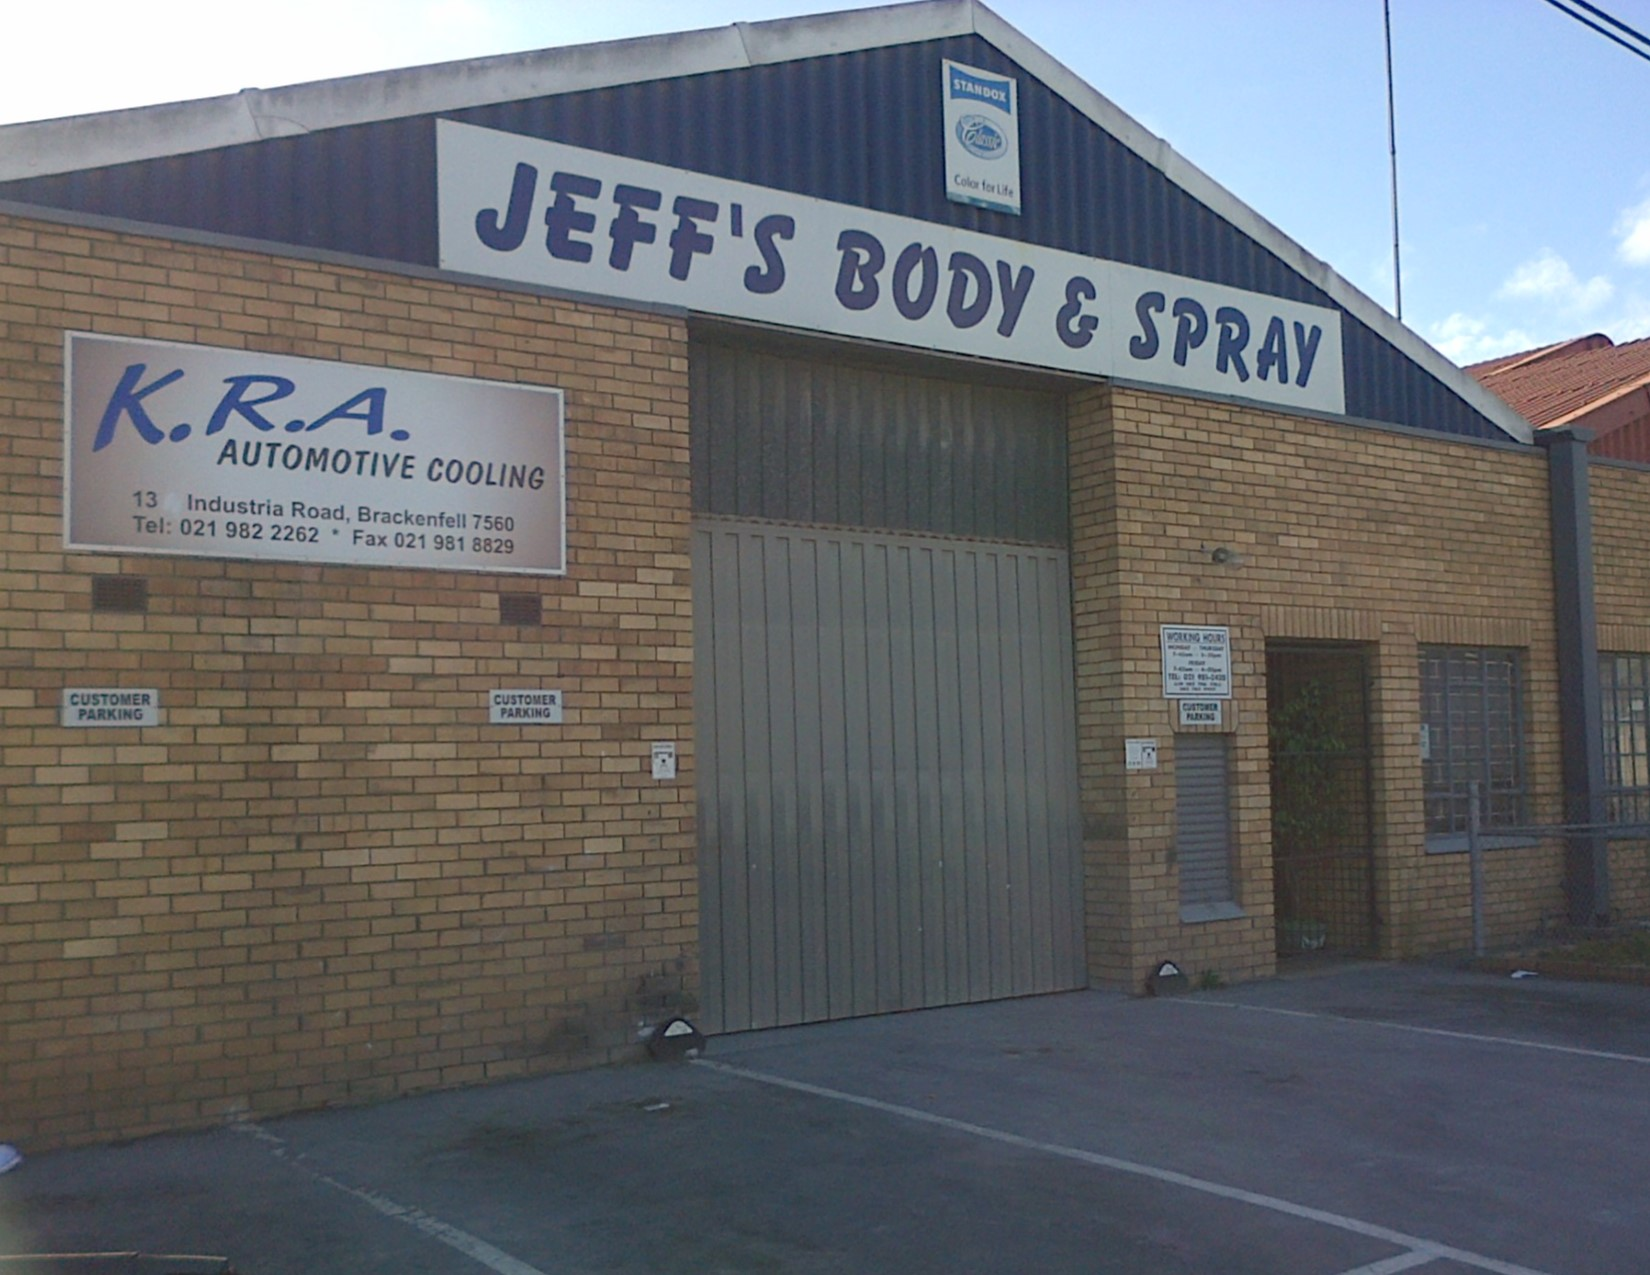 Jeff's Body & Spray Works